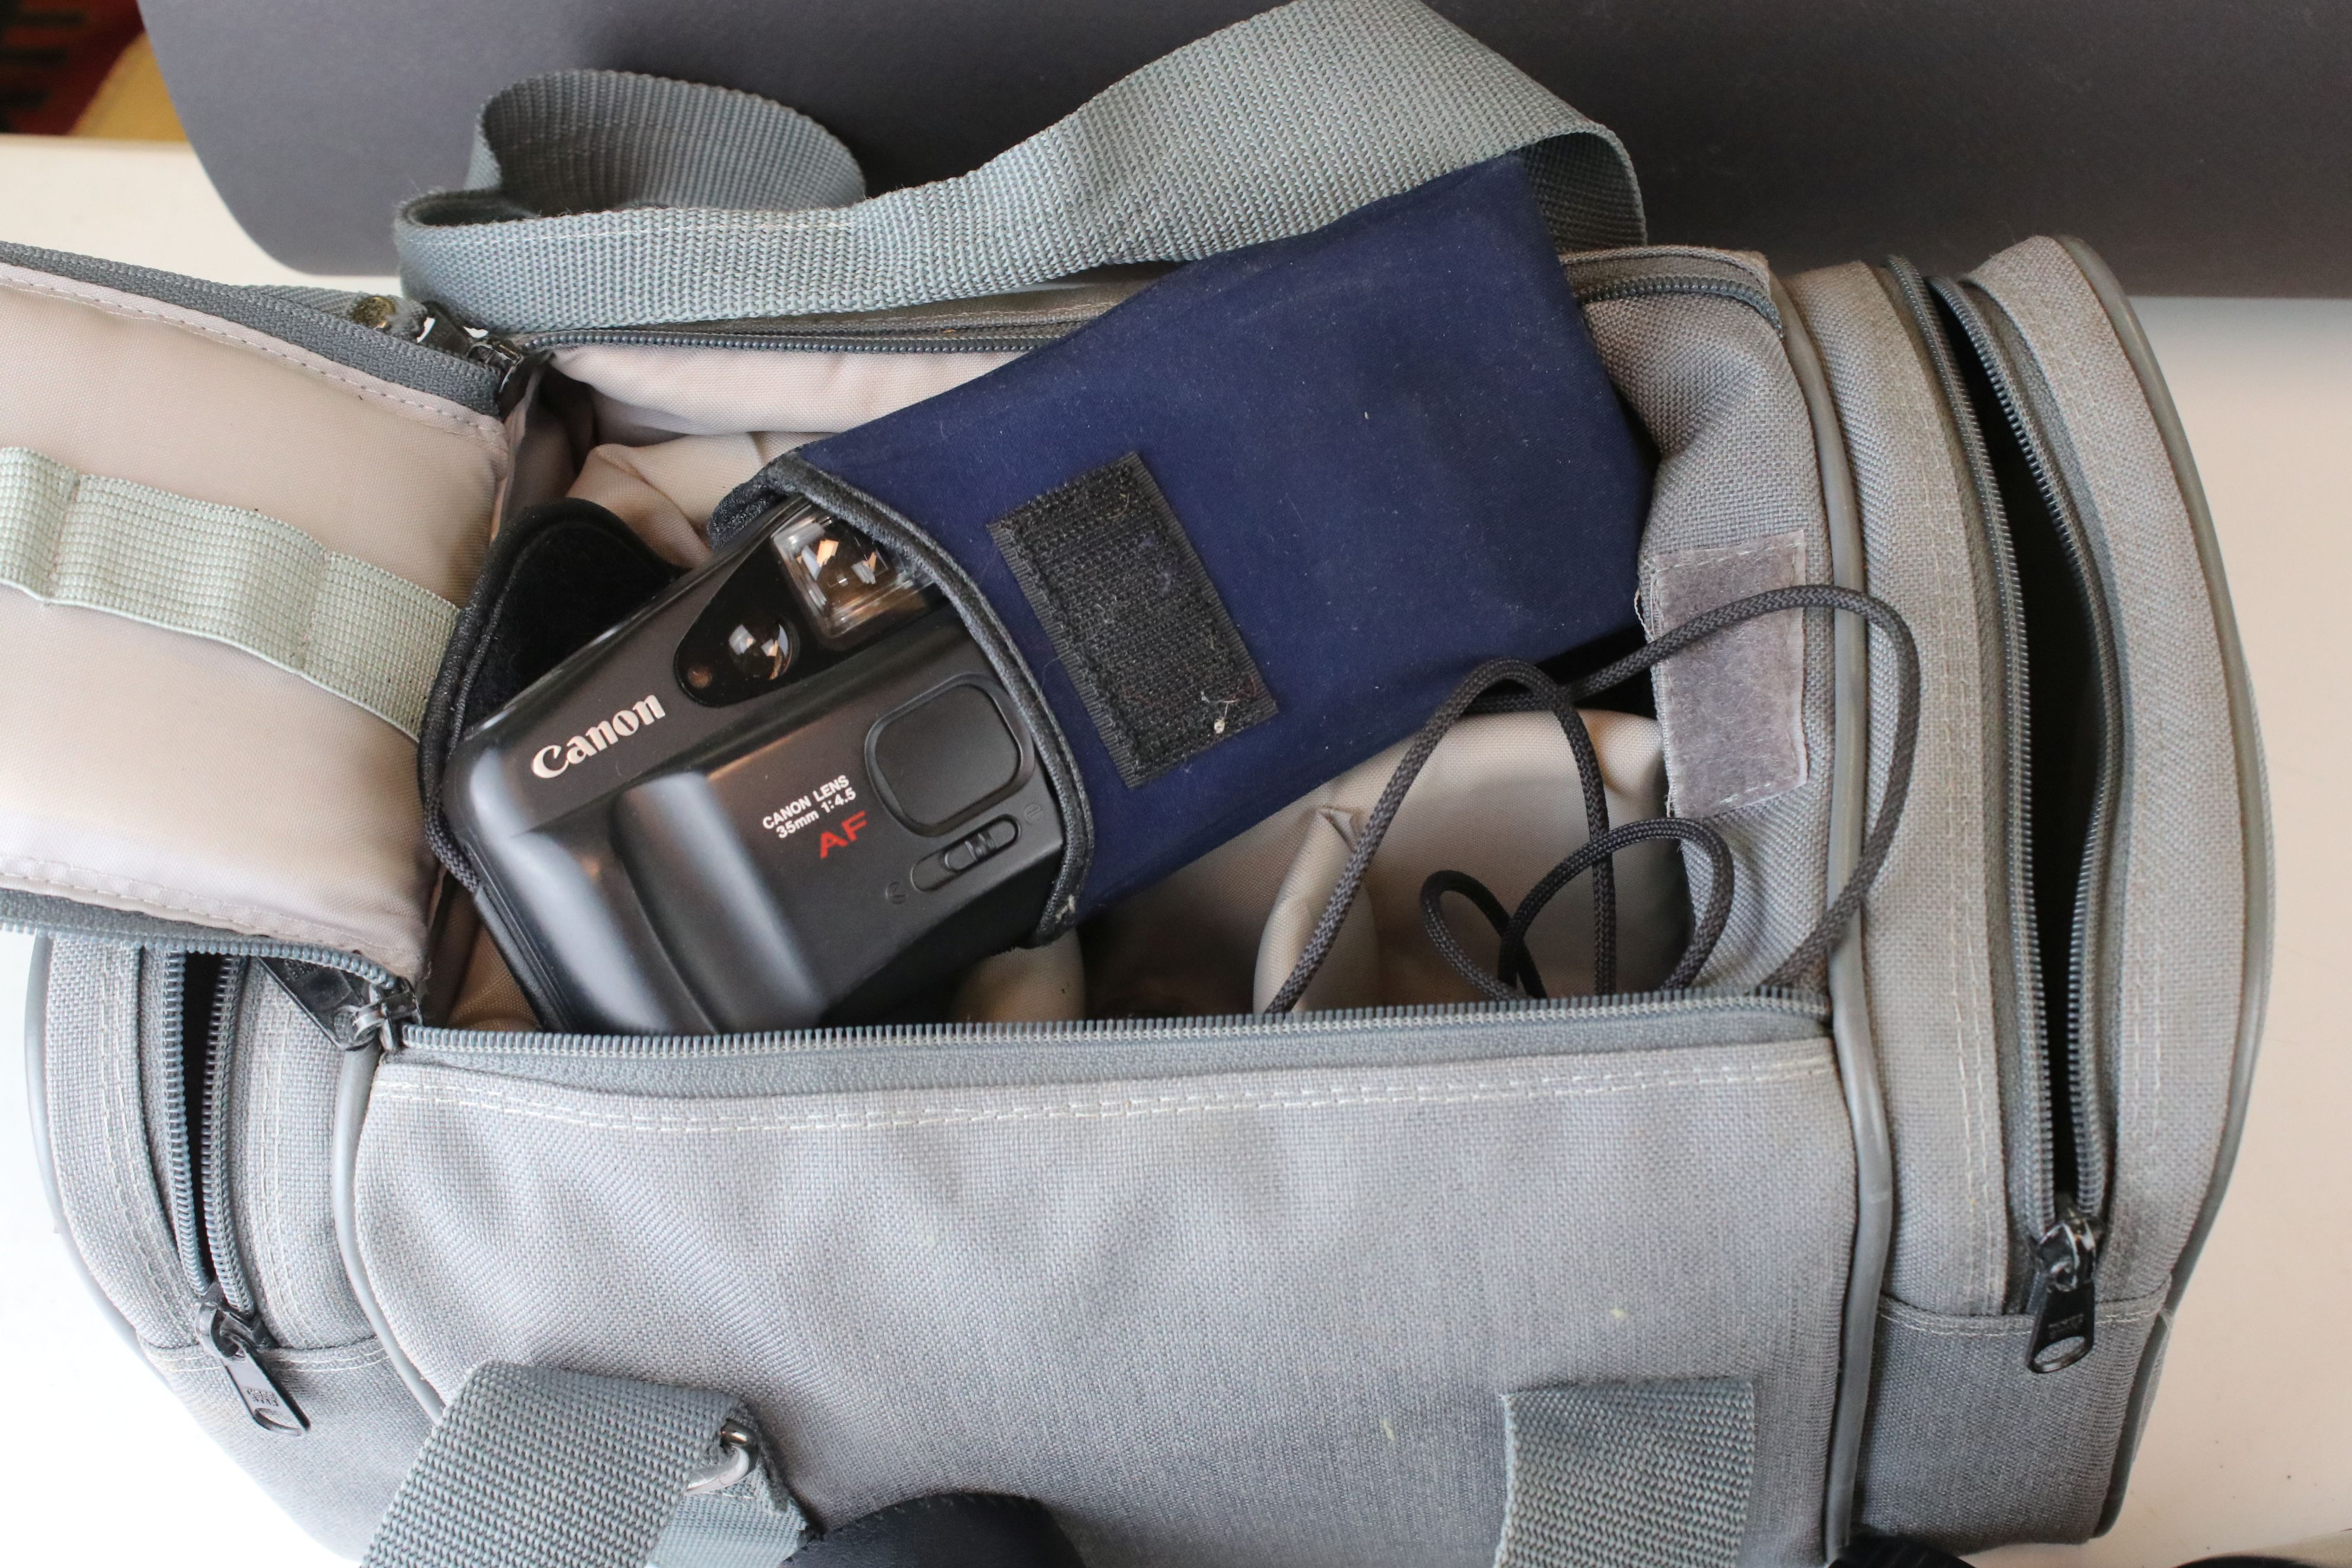 A collection of cameras and photographic equipment to include an Olympus OM10 35mm SLR camera. - Image 6 of 6